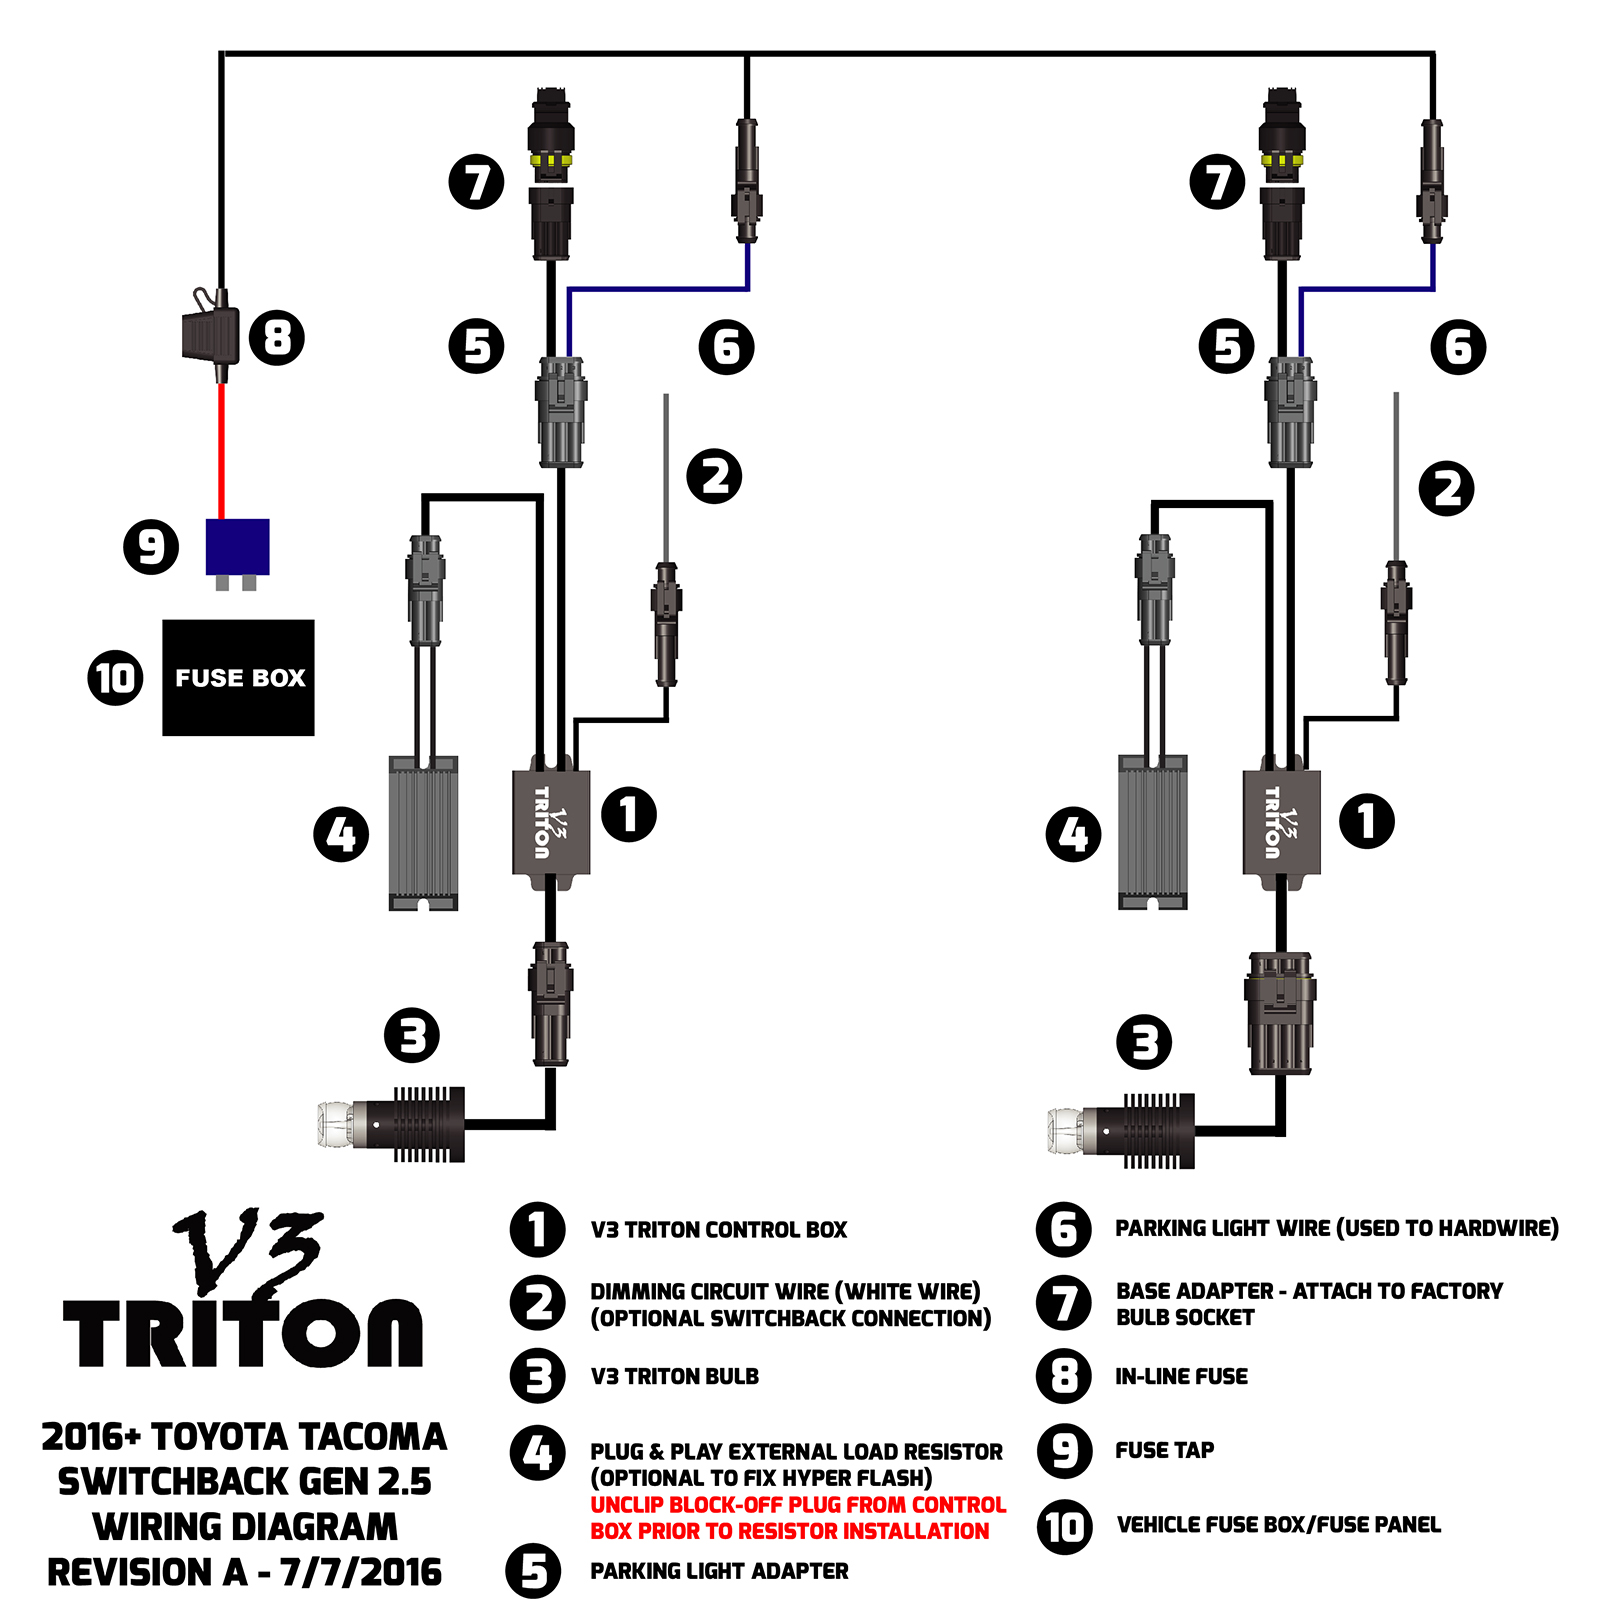 V3_Gen_2.5_A_Tacoma wiring diagrams 2016 toyota tacoma tow wiring schematic at readyjetset.co